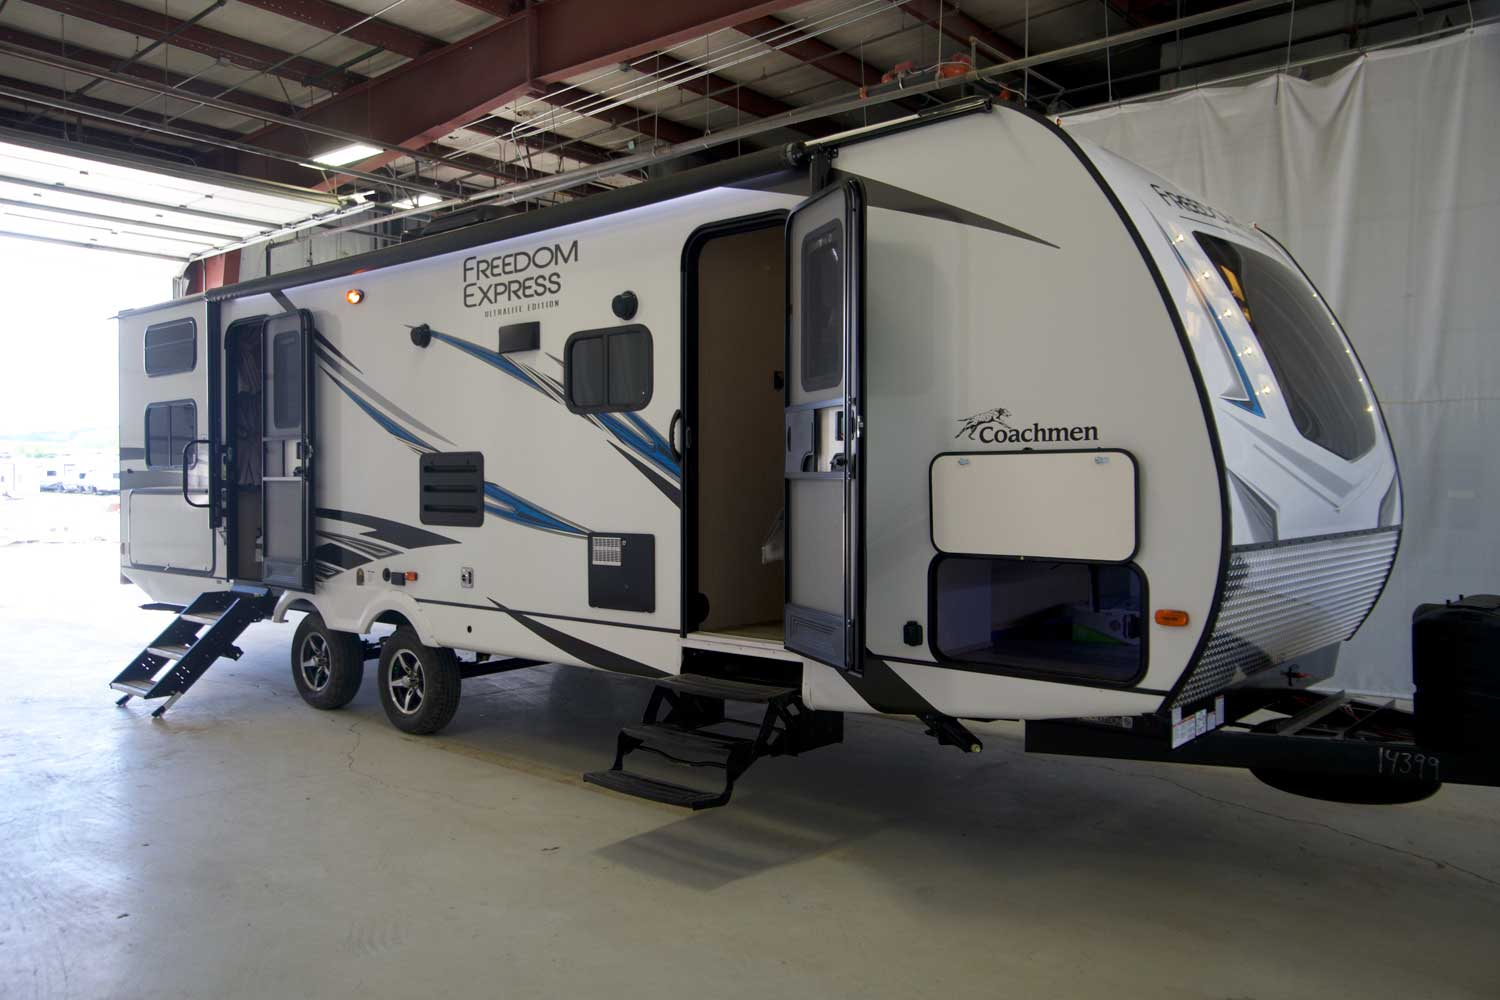 2021 FOREST RIVER COACHMEN FREEDOM EXPRESS 287BHDS full